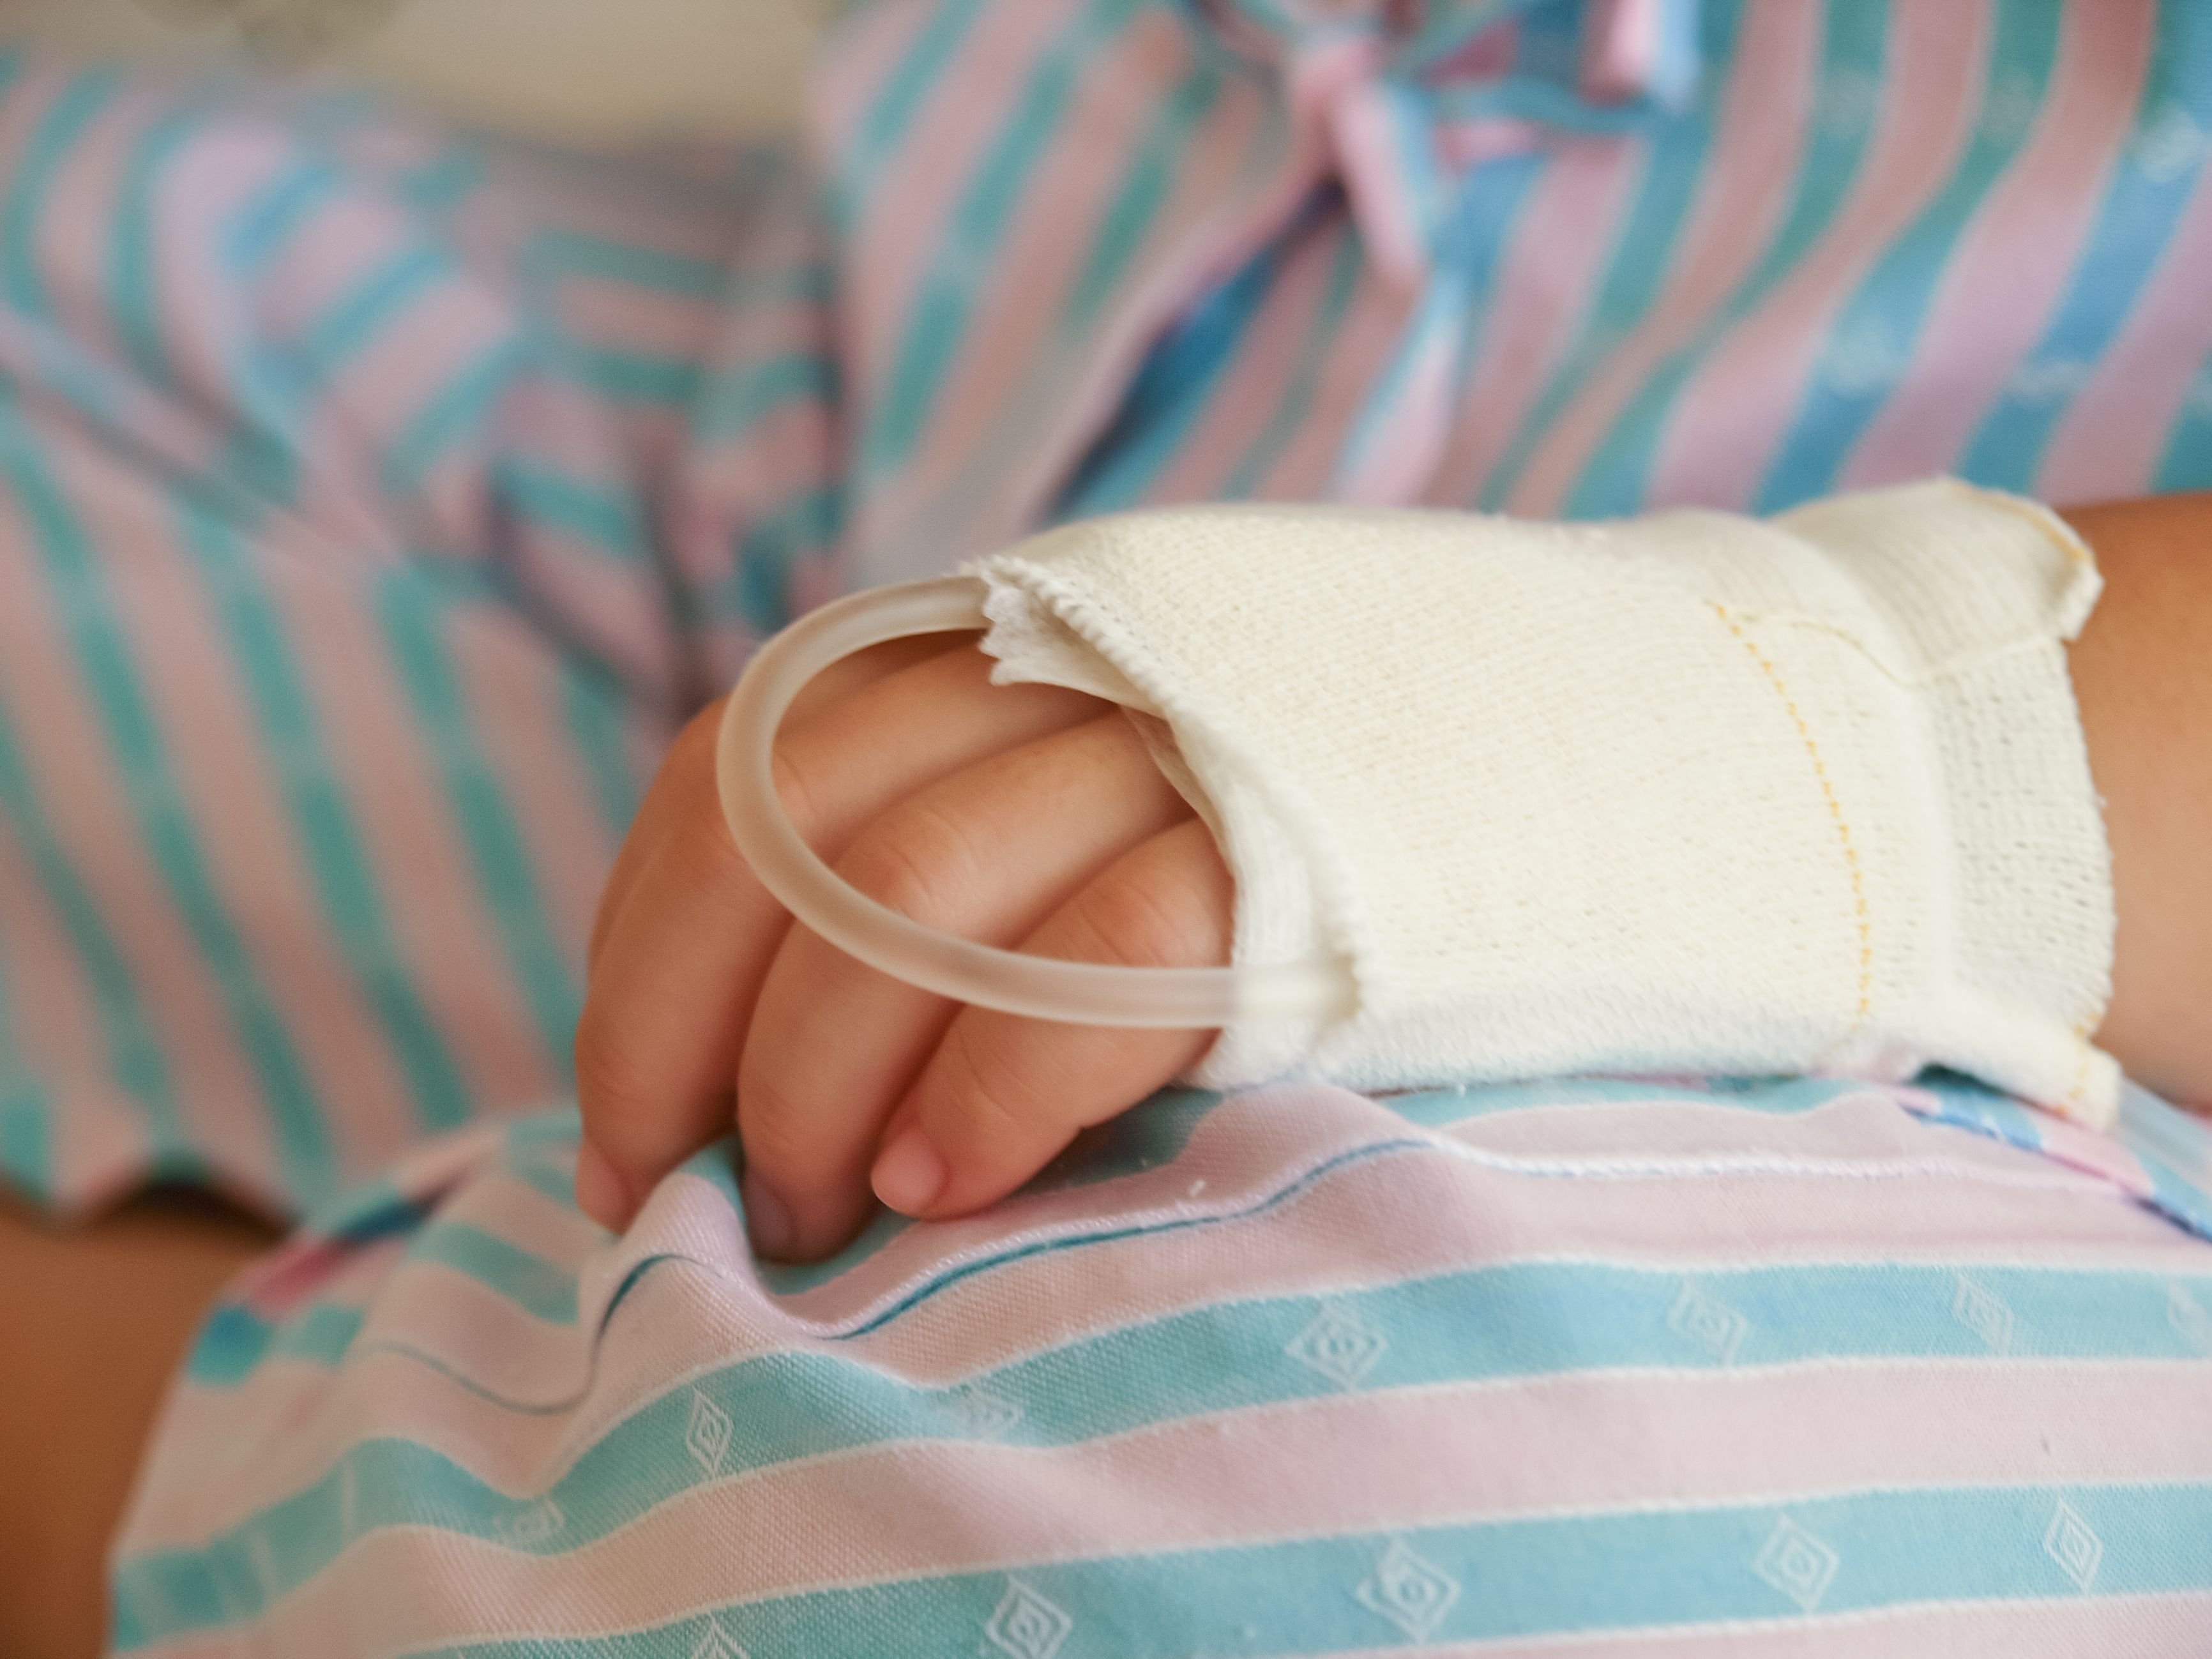 A sick child in the hospital with a dextrose on the hand. | Source: Shutterstock